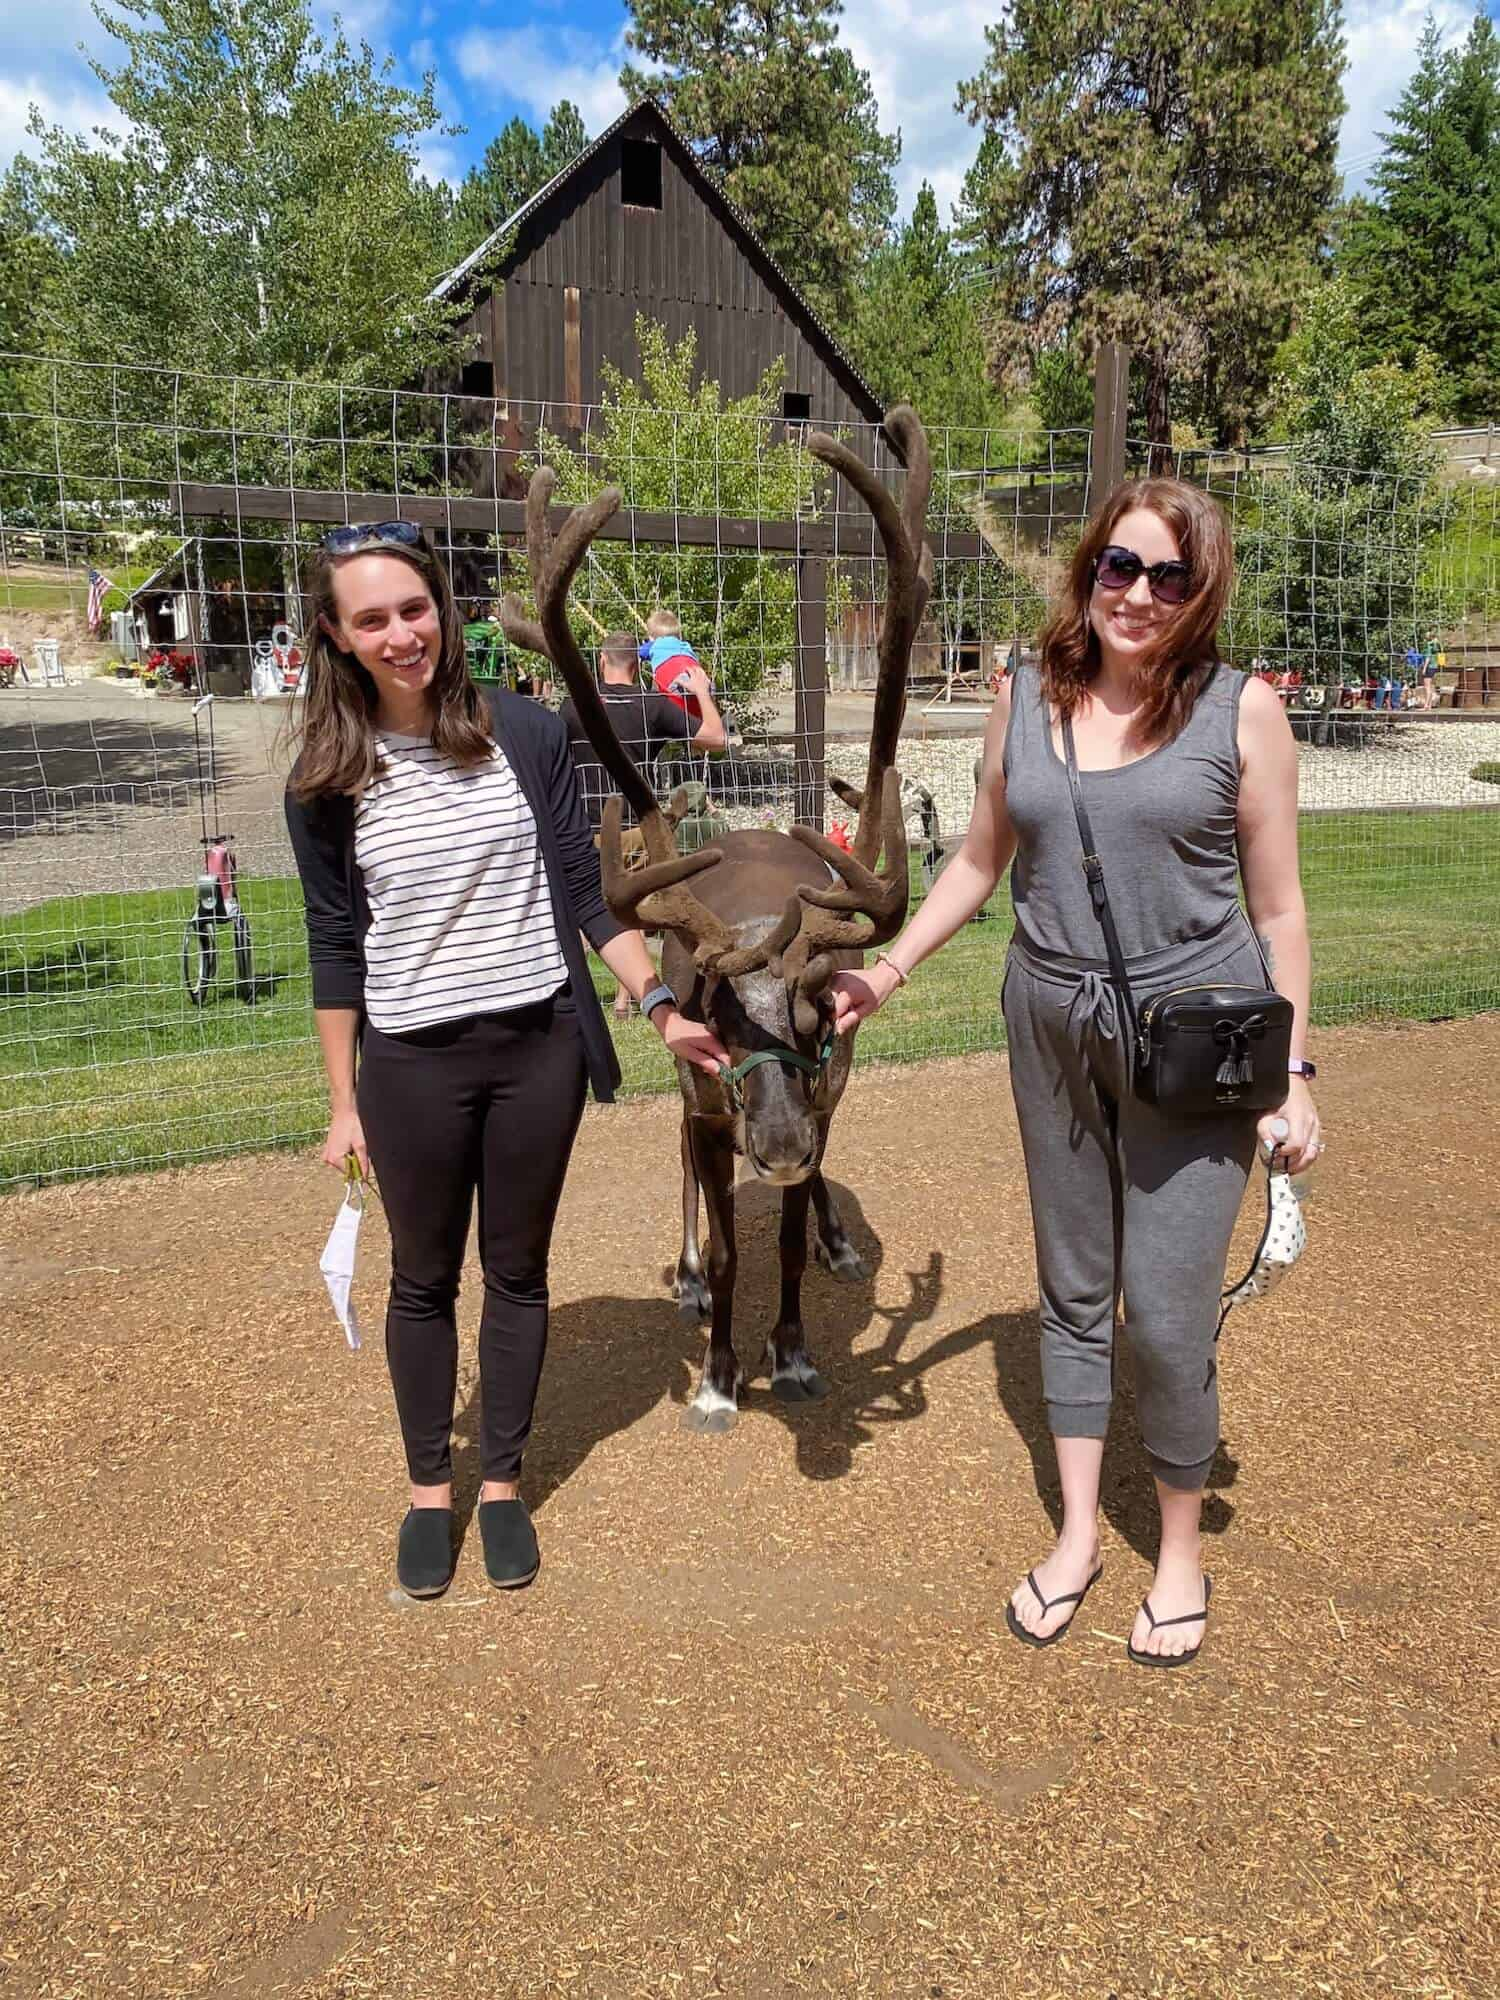 Leavenworth Bachelorette Party - Reindeer Farm